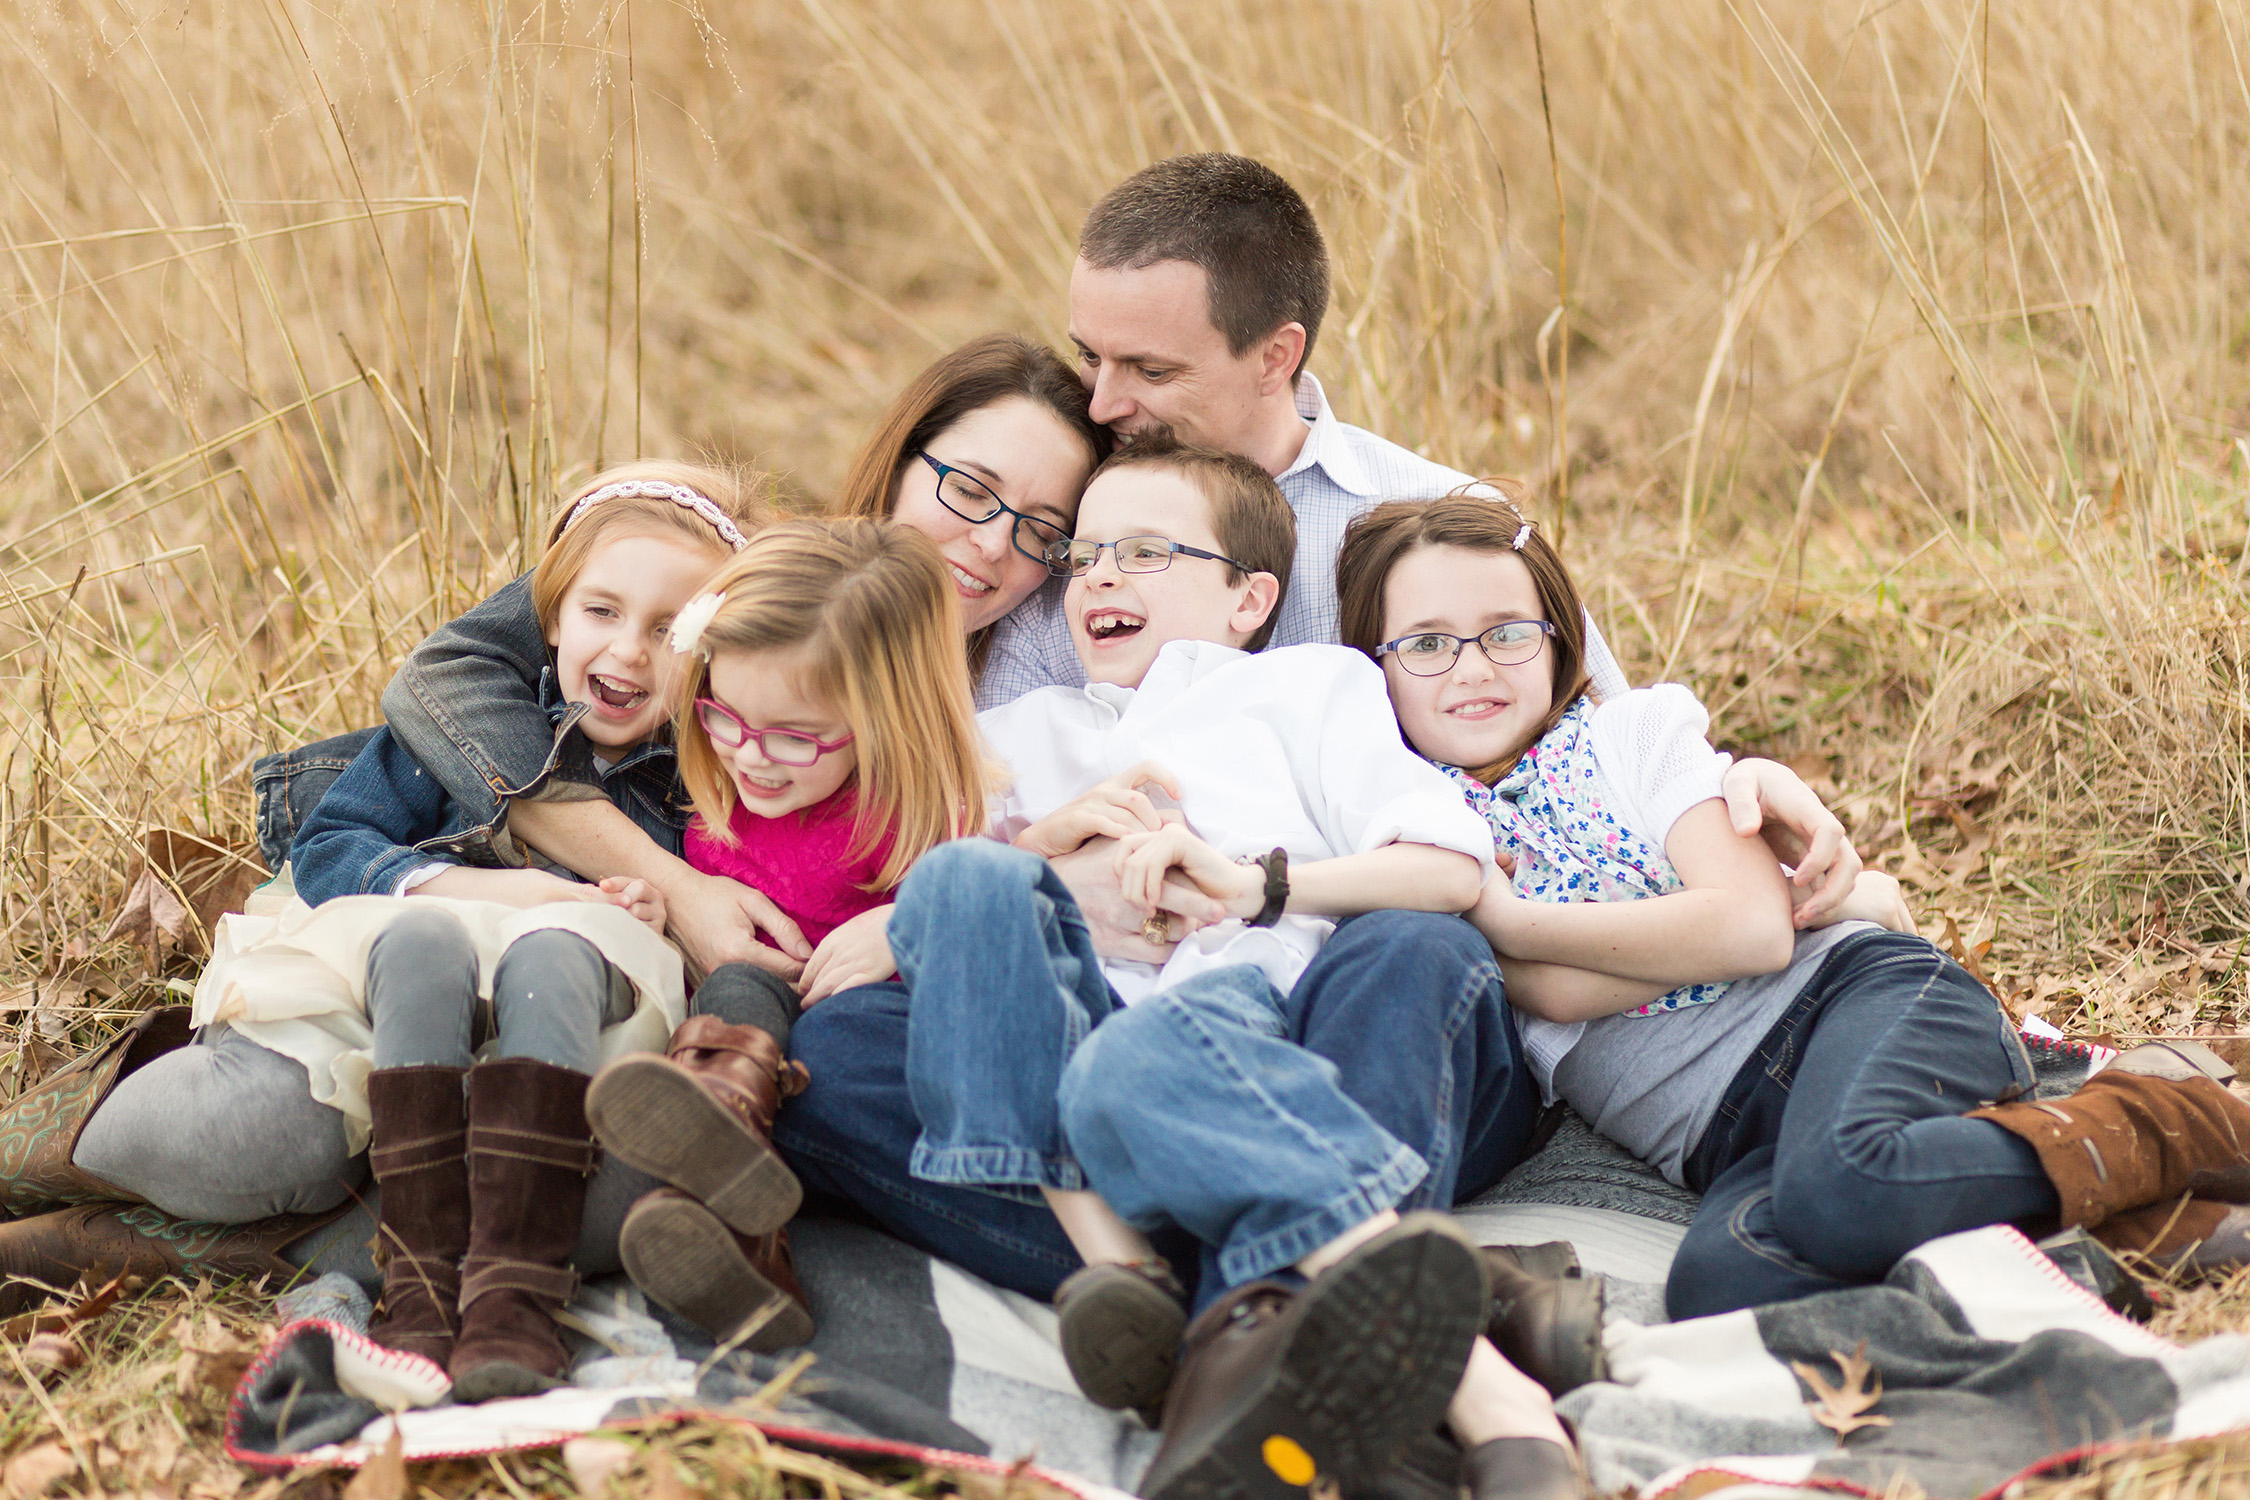 Family of 6 sitting in a field | St. Louis Photographer